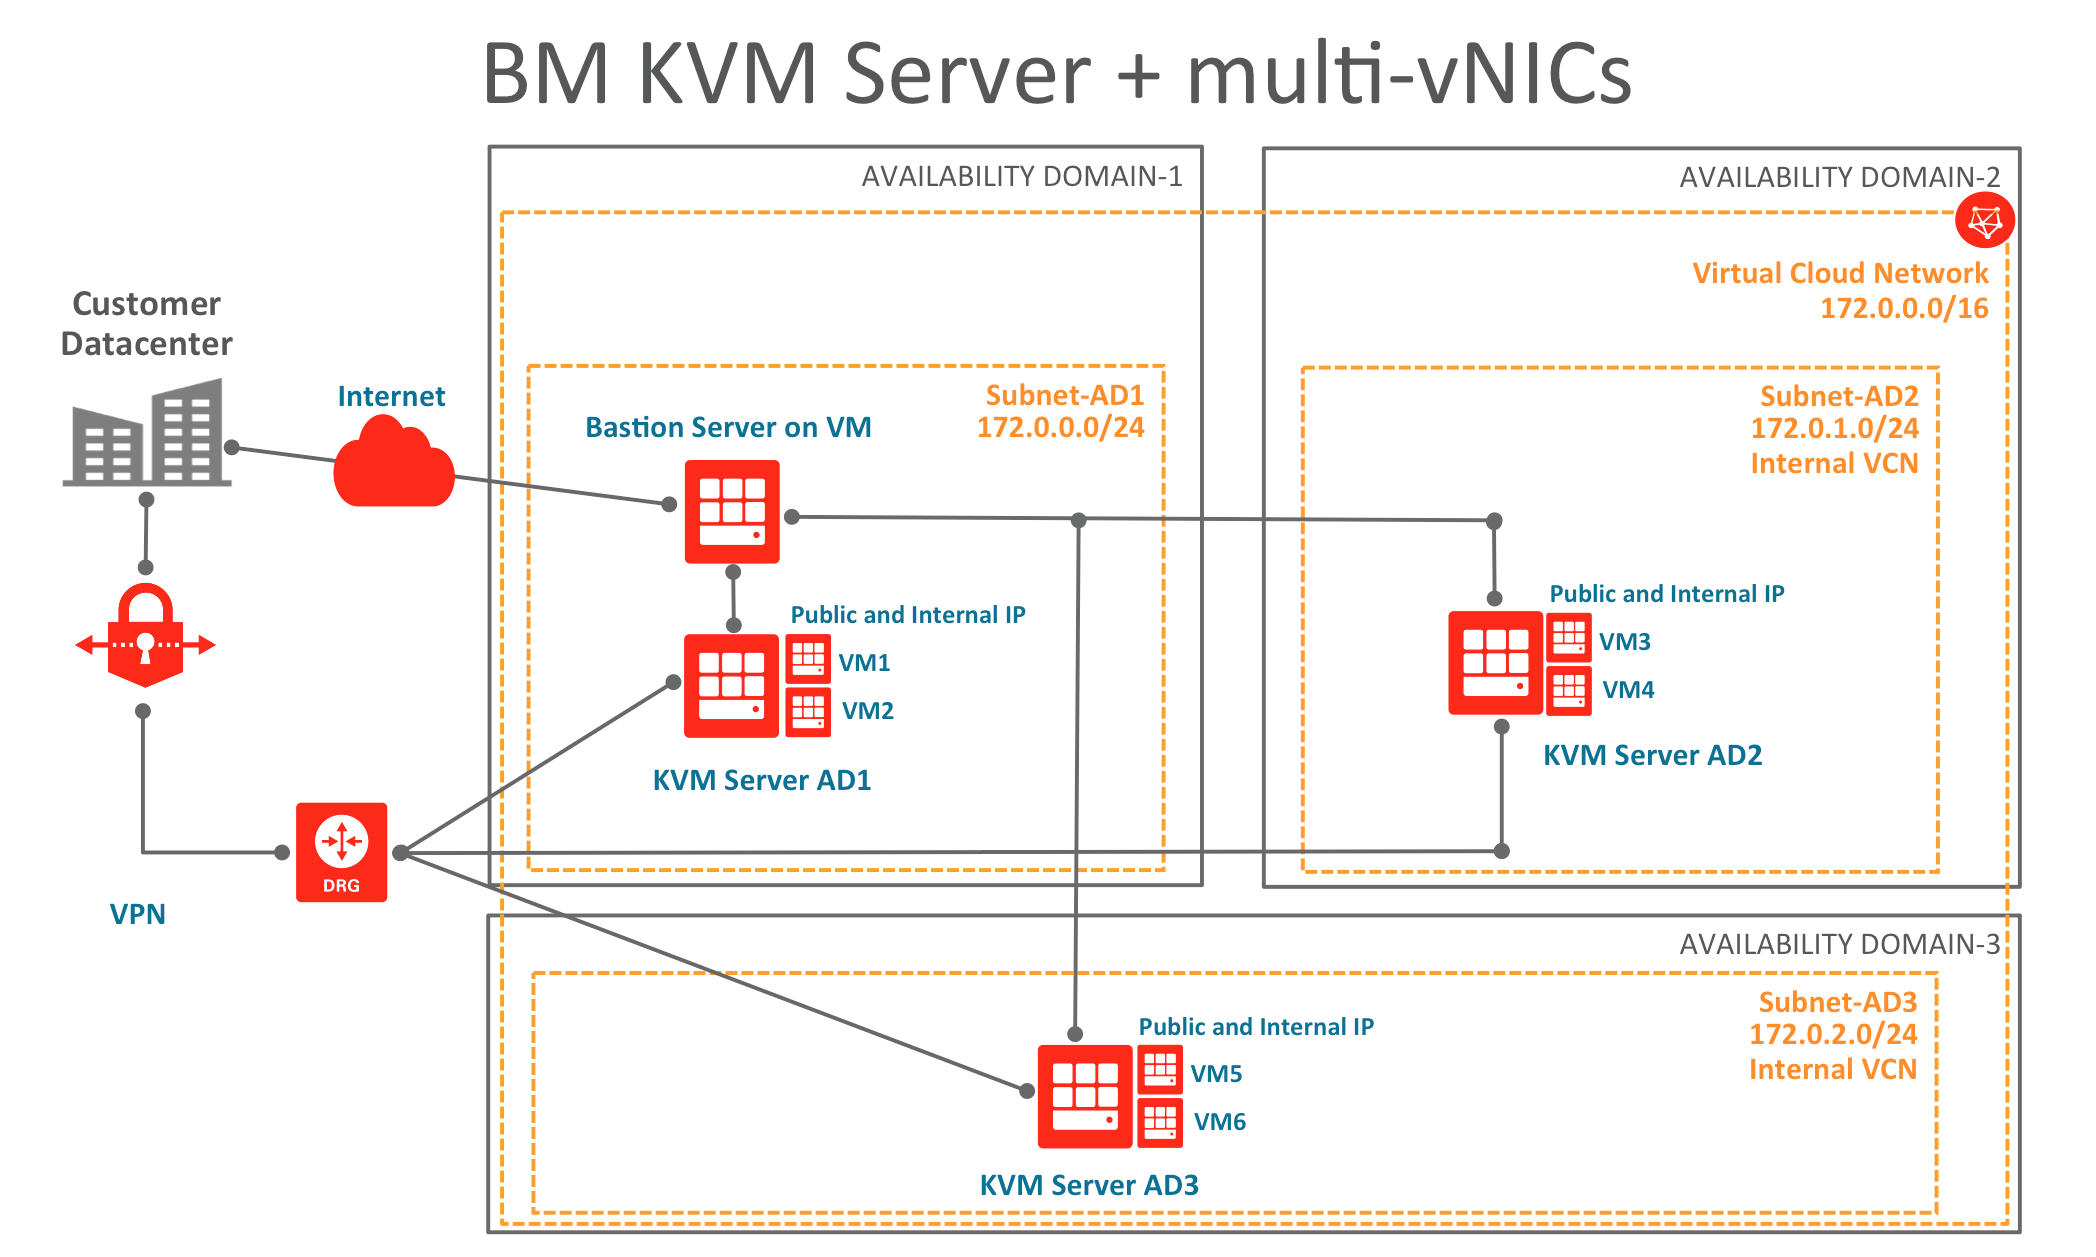 Installing non official OSs on a KVM Server with multi-VNIC